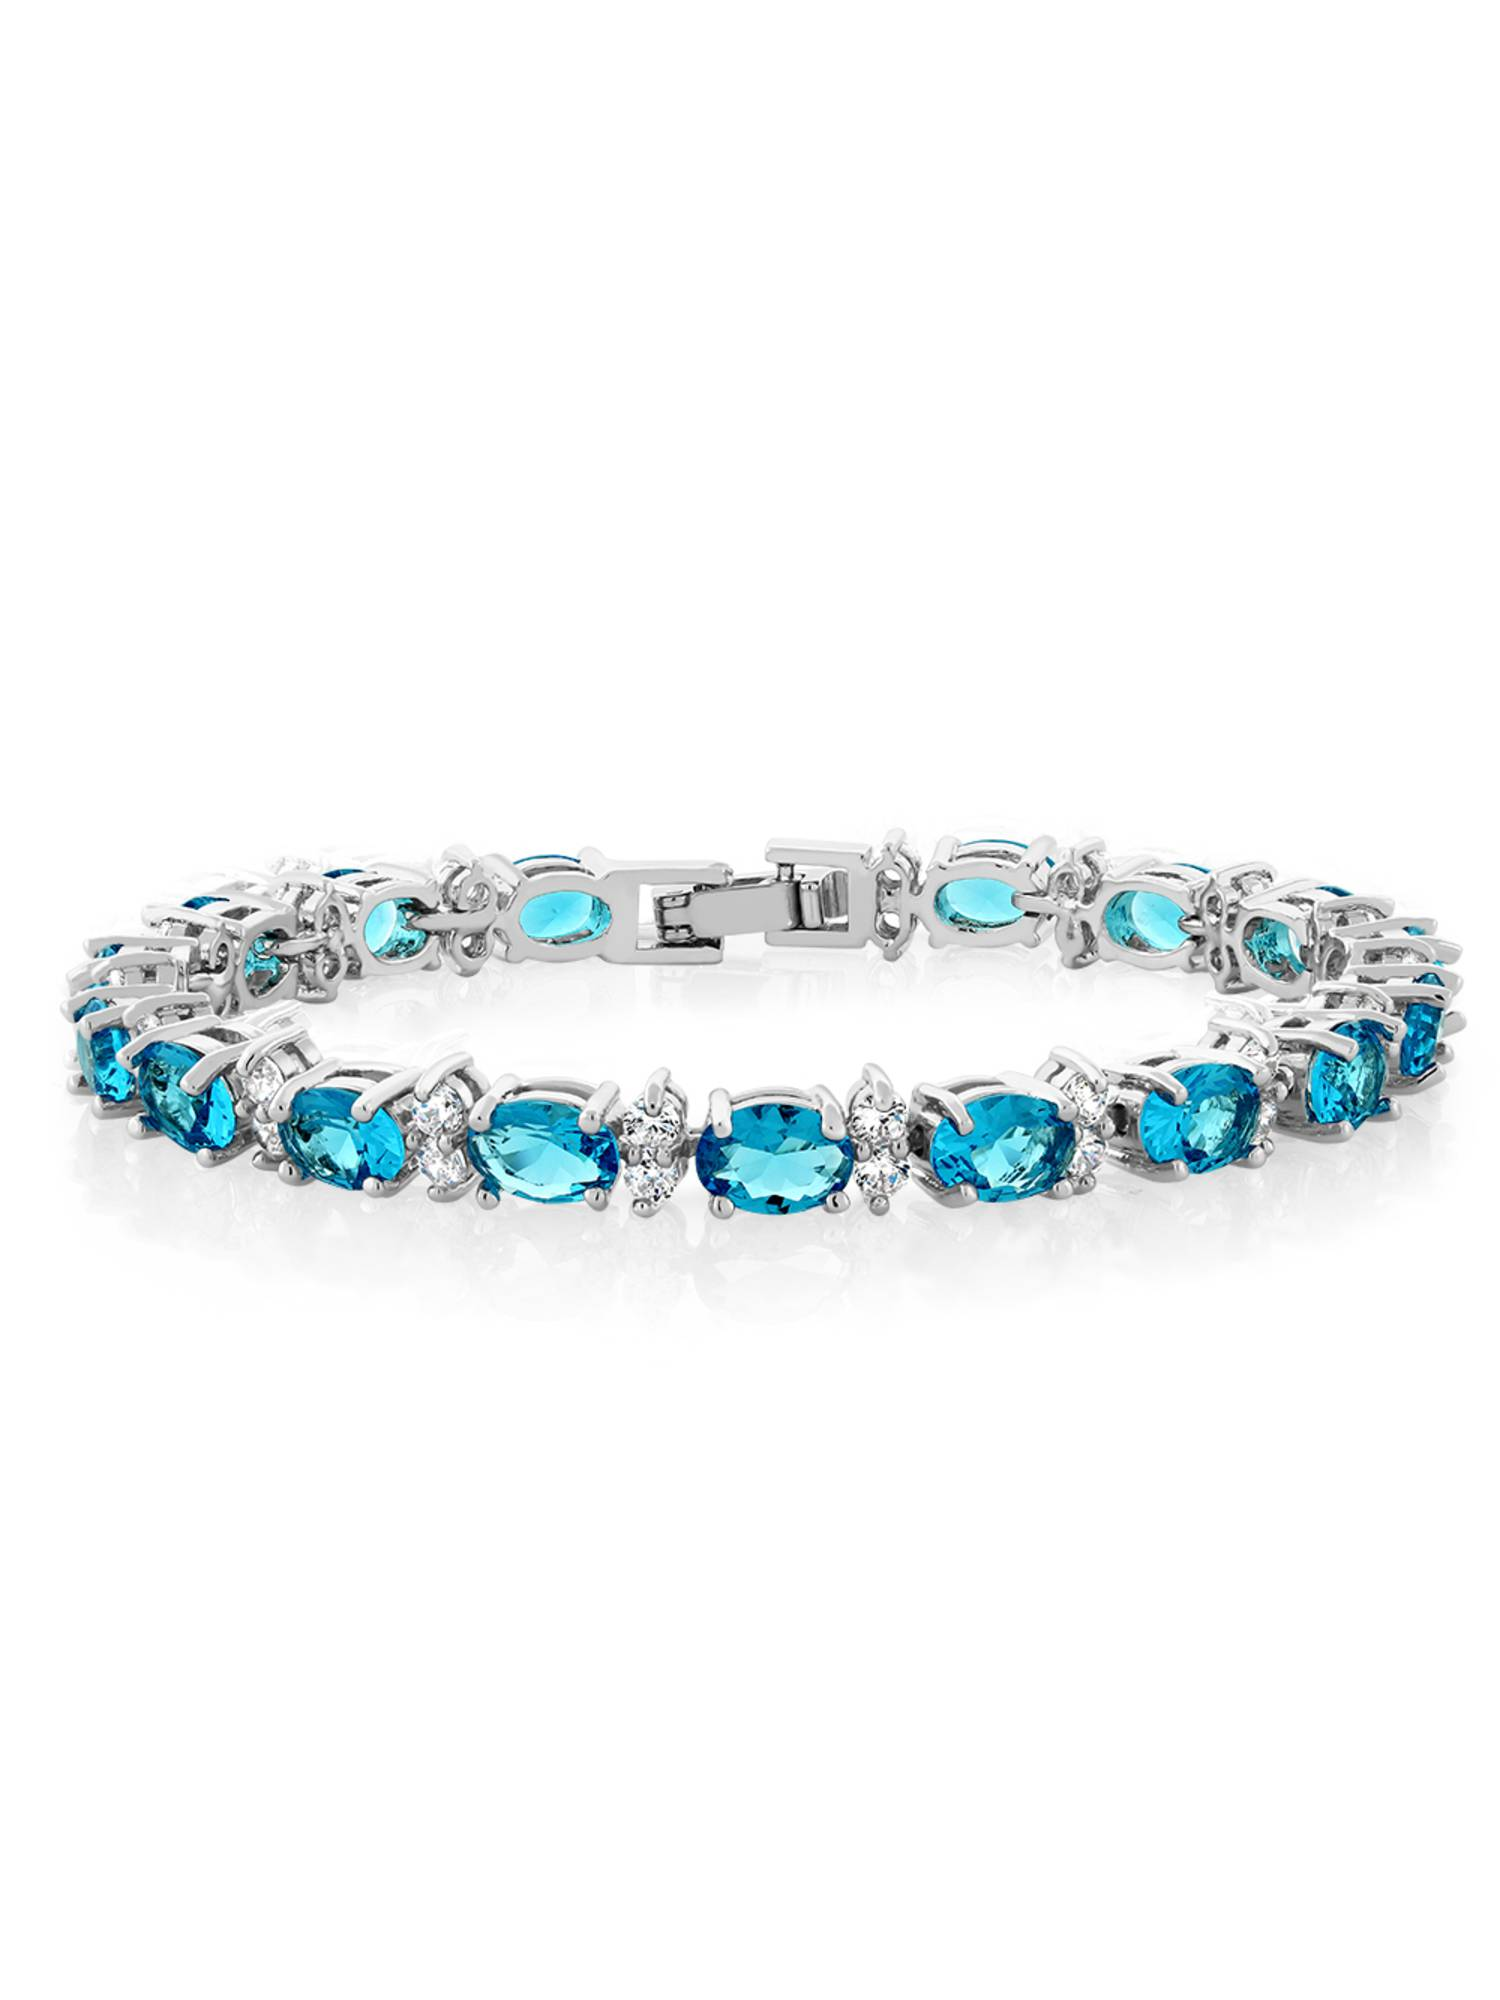 7 Inch Length Gem Stone King 2 Piece Round White Cubic Zirconia and Simulated Blue Sapphire Set of 2 Tennis Bracelets for Women 4.50 Ct Each